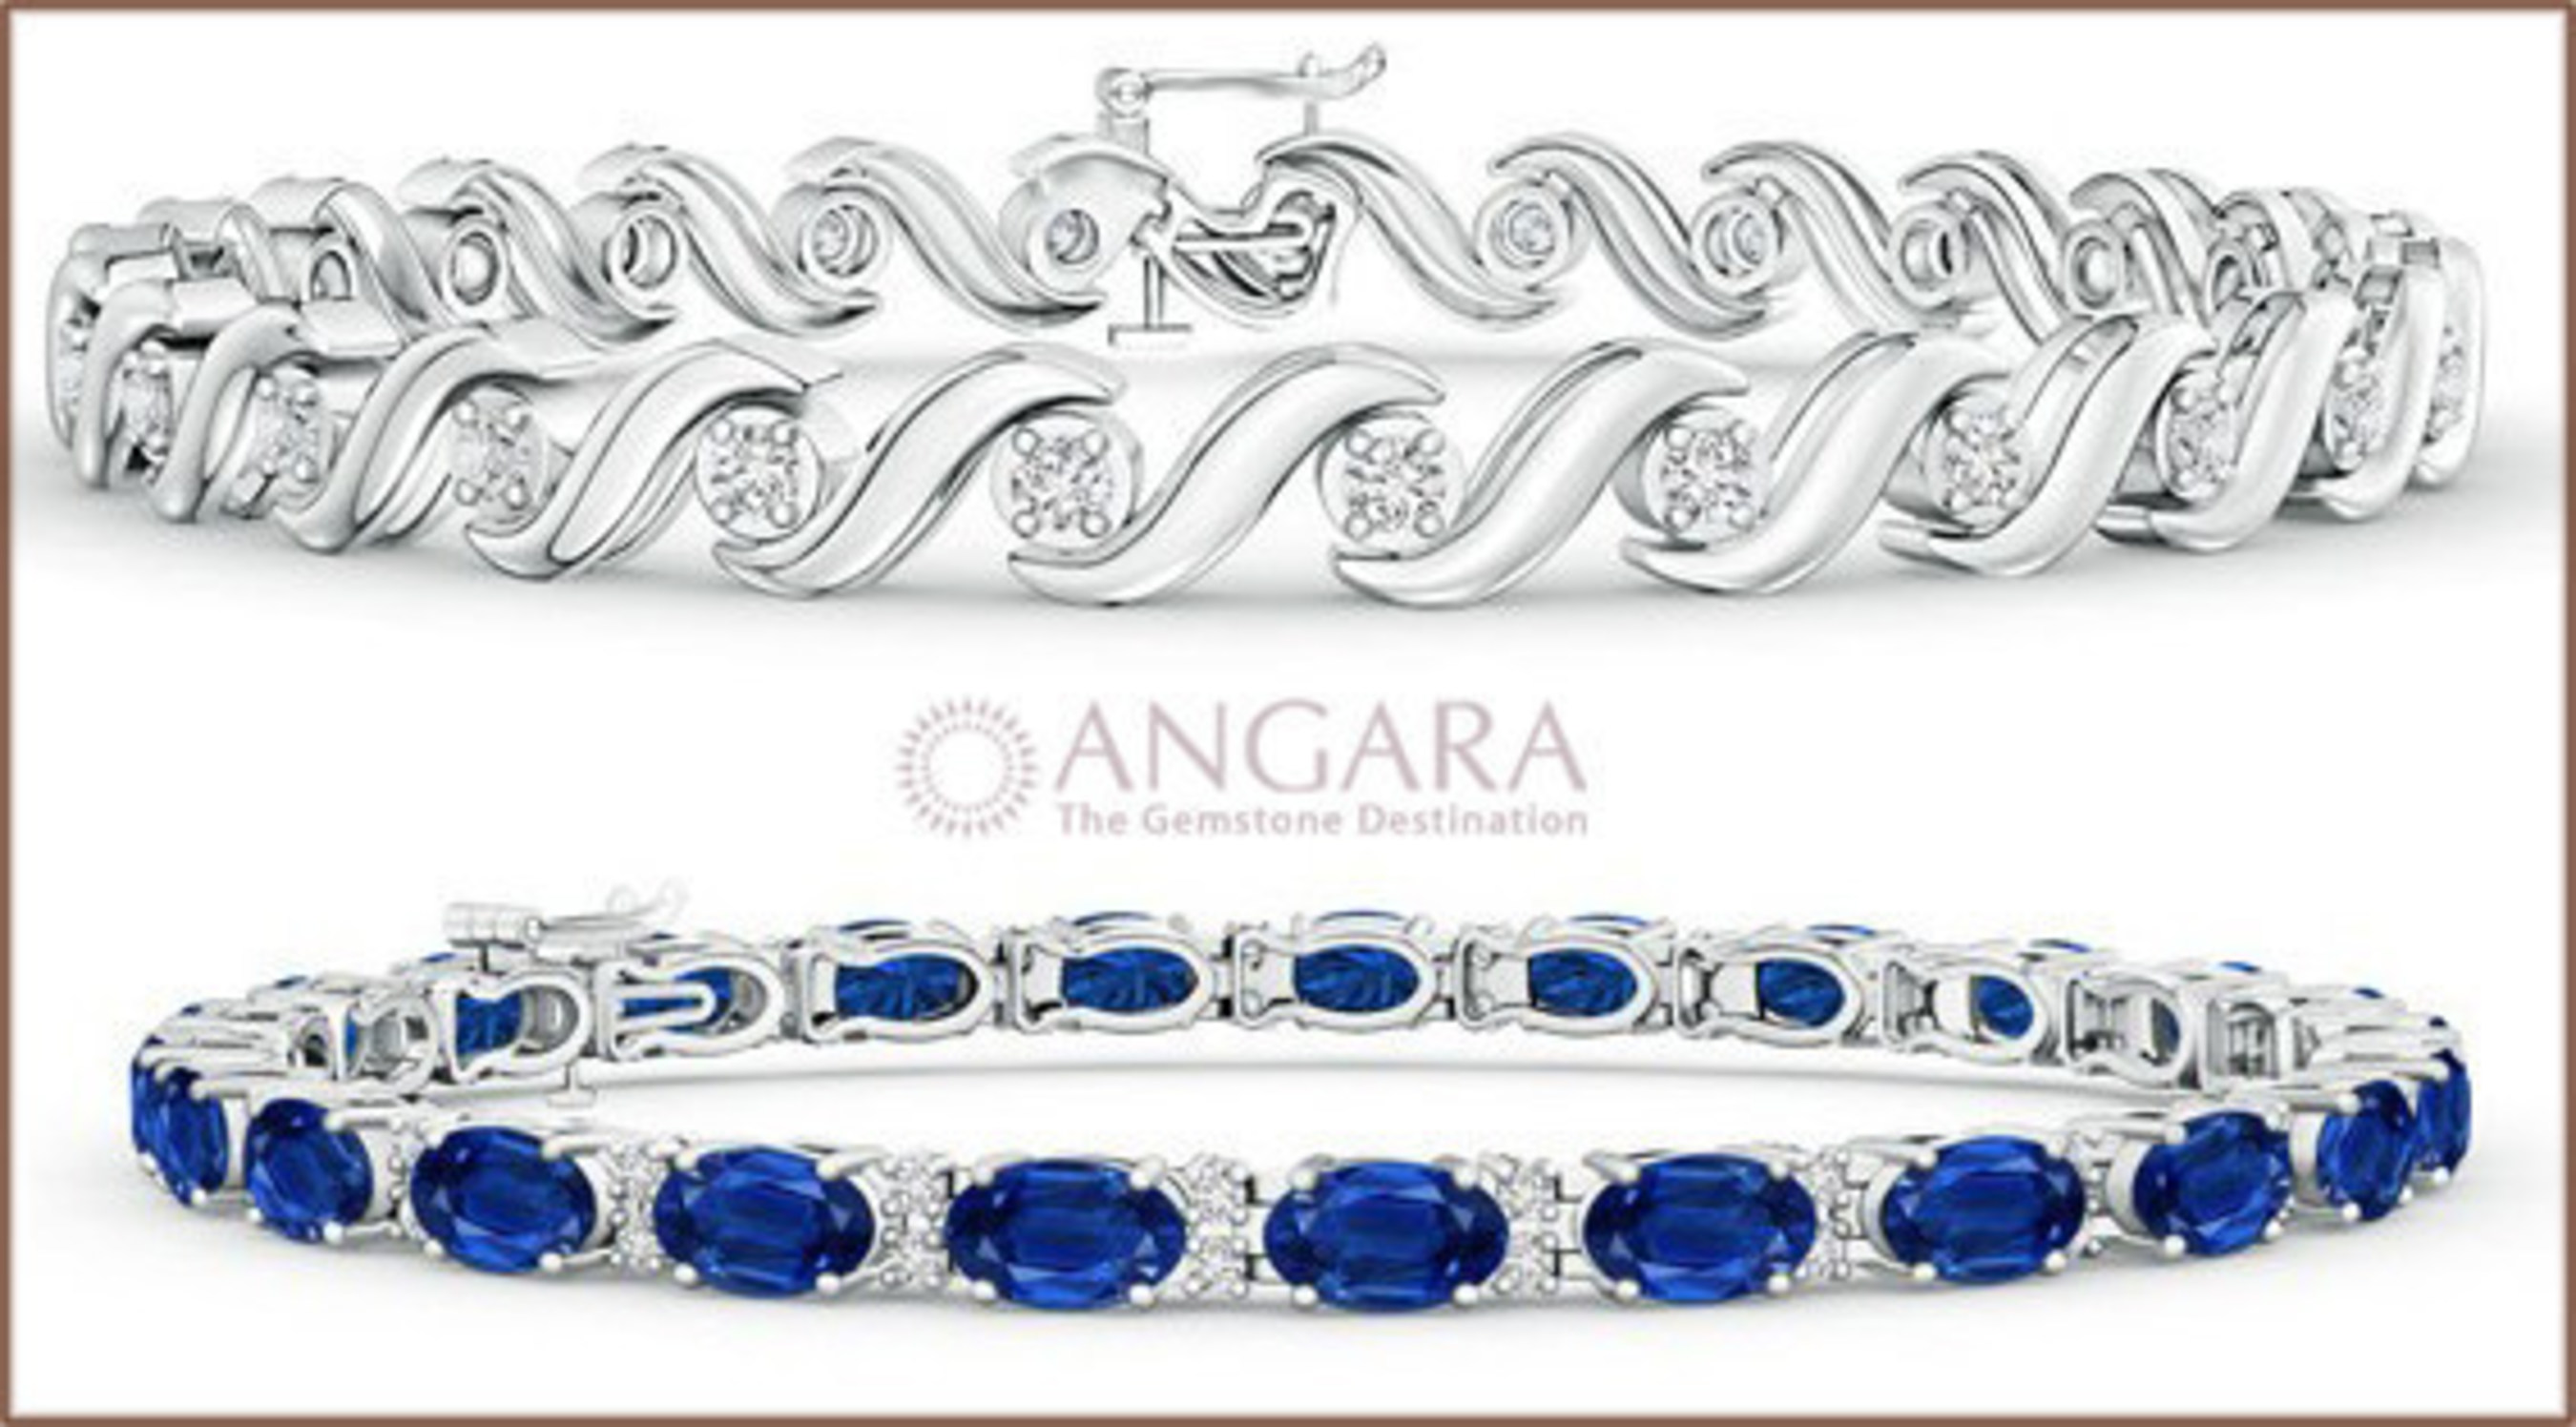 Angara Extends Jewelry Expectations